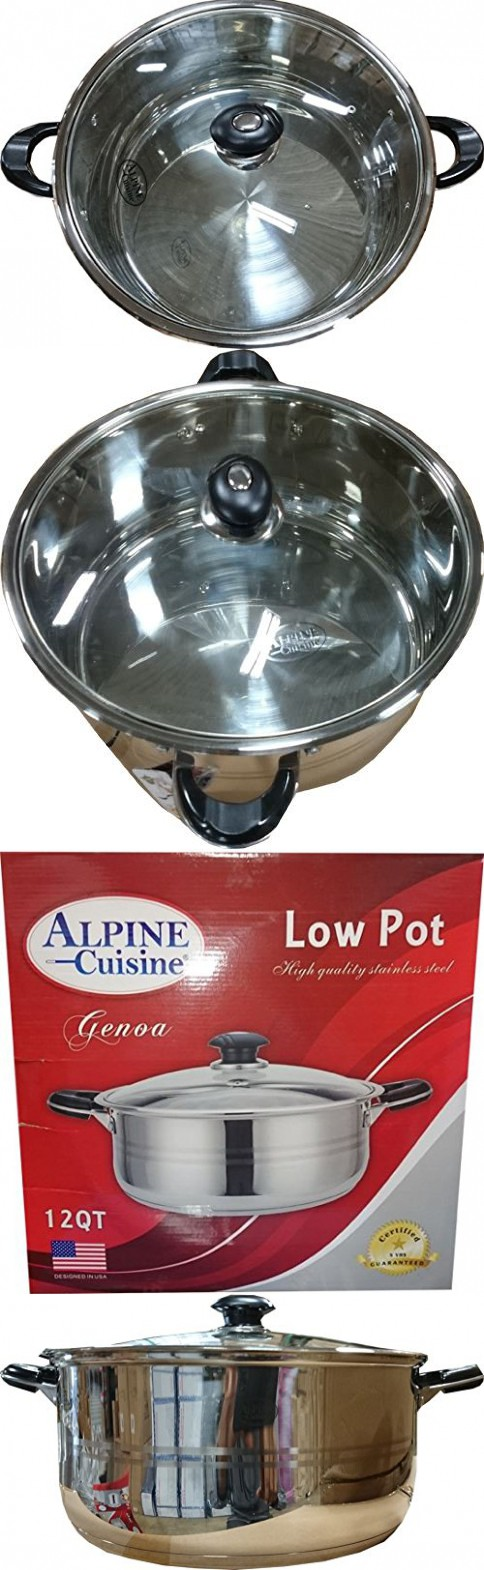 Alpine cuisine stainless steel low pot with lid 12qt for Alpine cuisine ceramic cookware